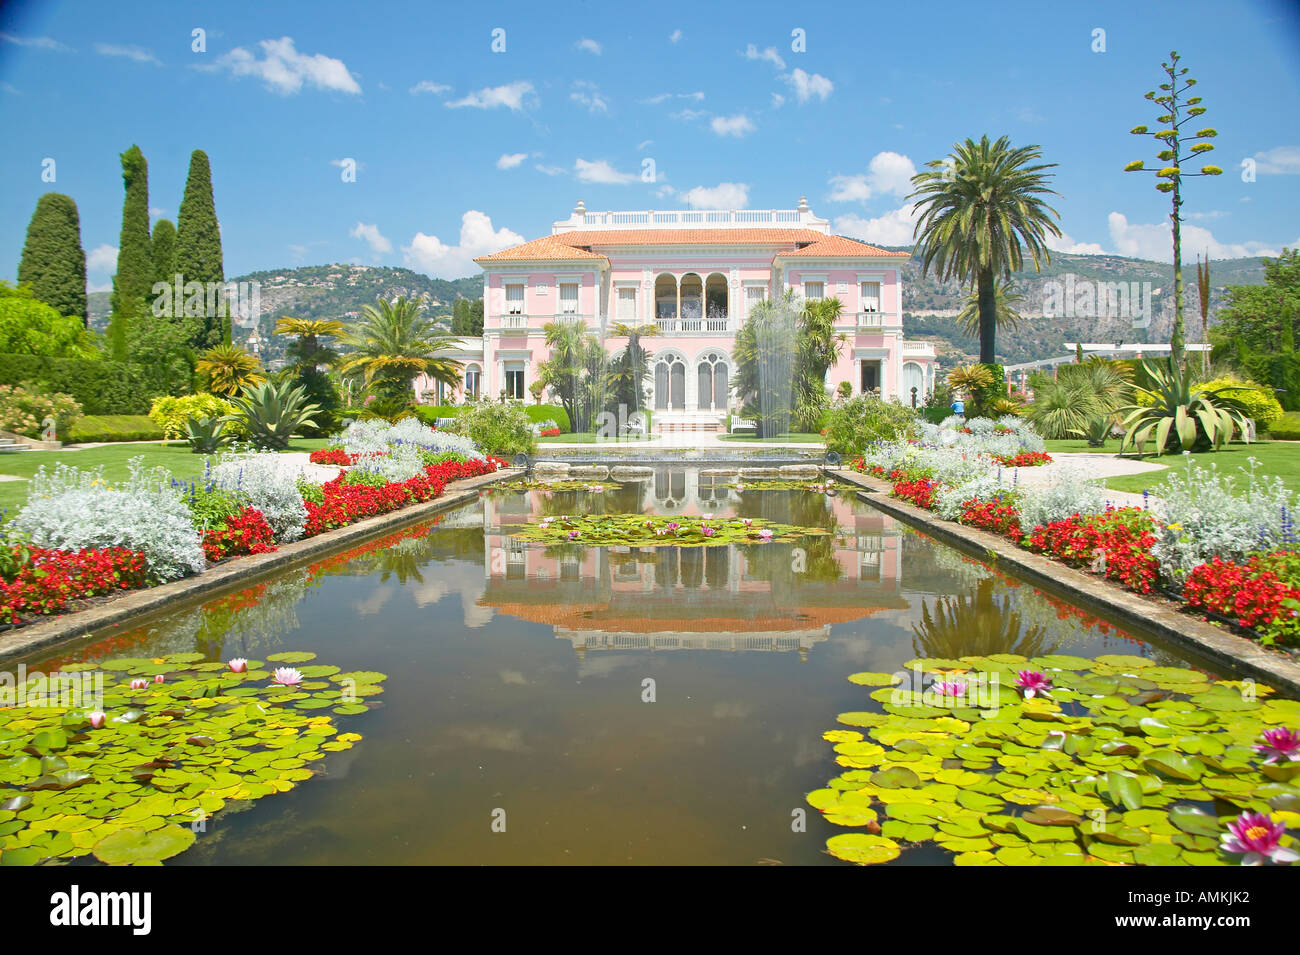 The Gardens and Villa Ephrussi de Rothschild Saint Jean Cap Ferrat France - Stock Image